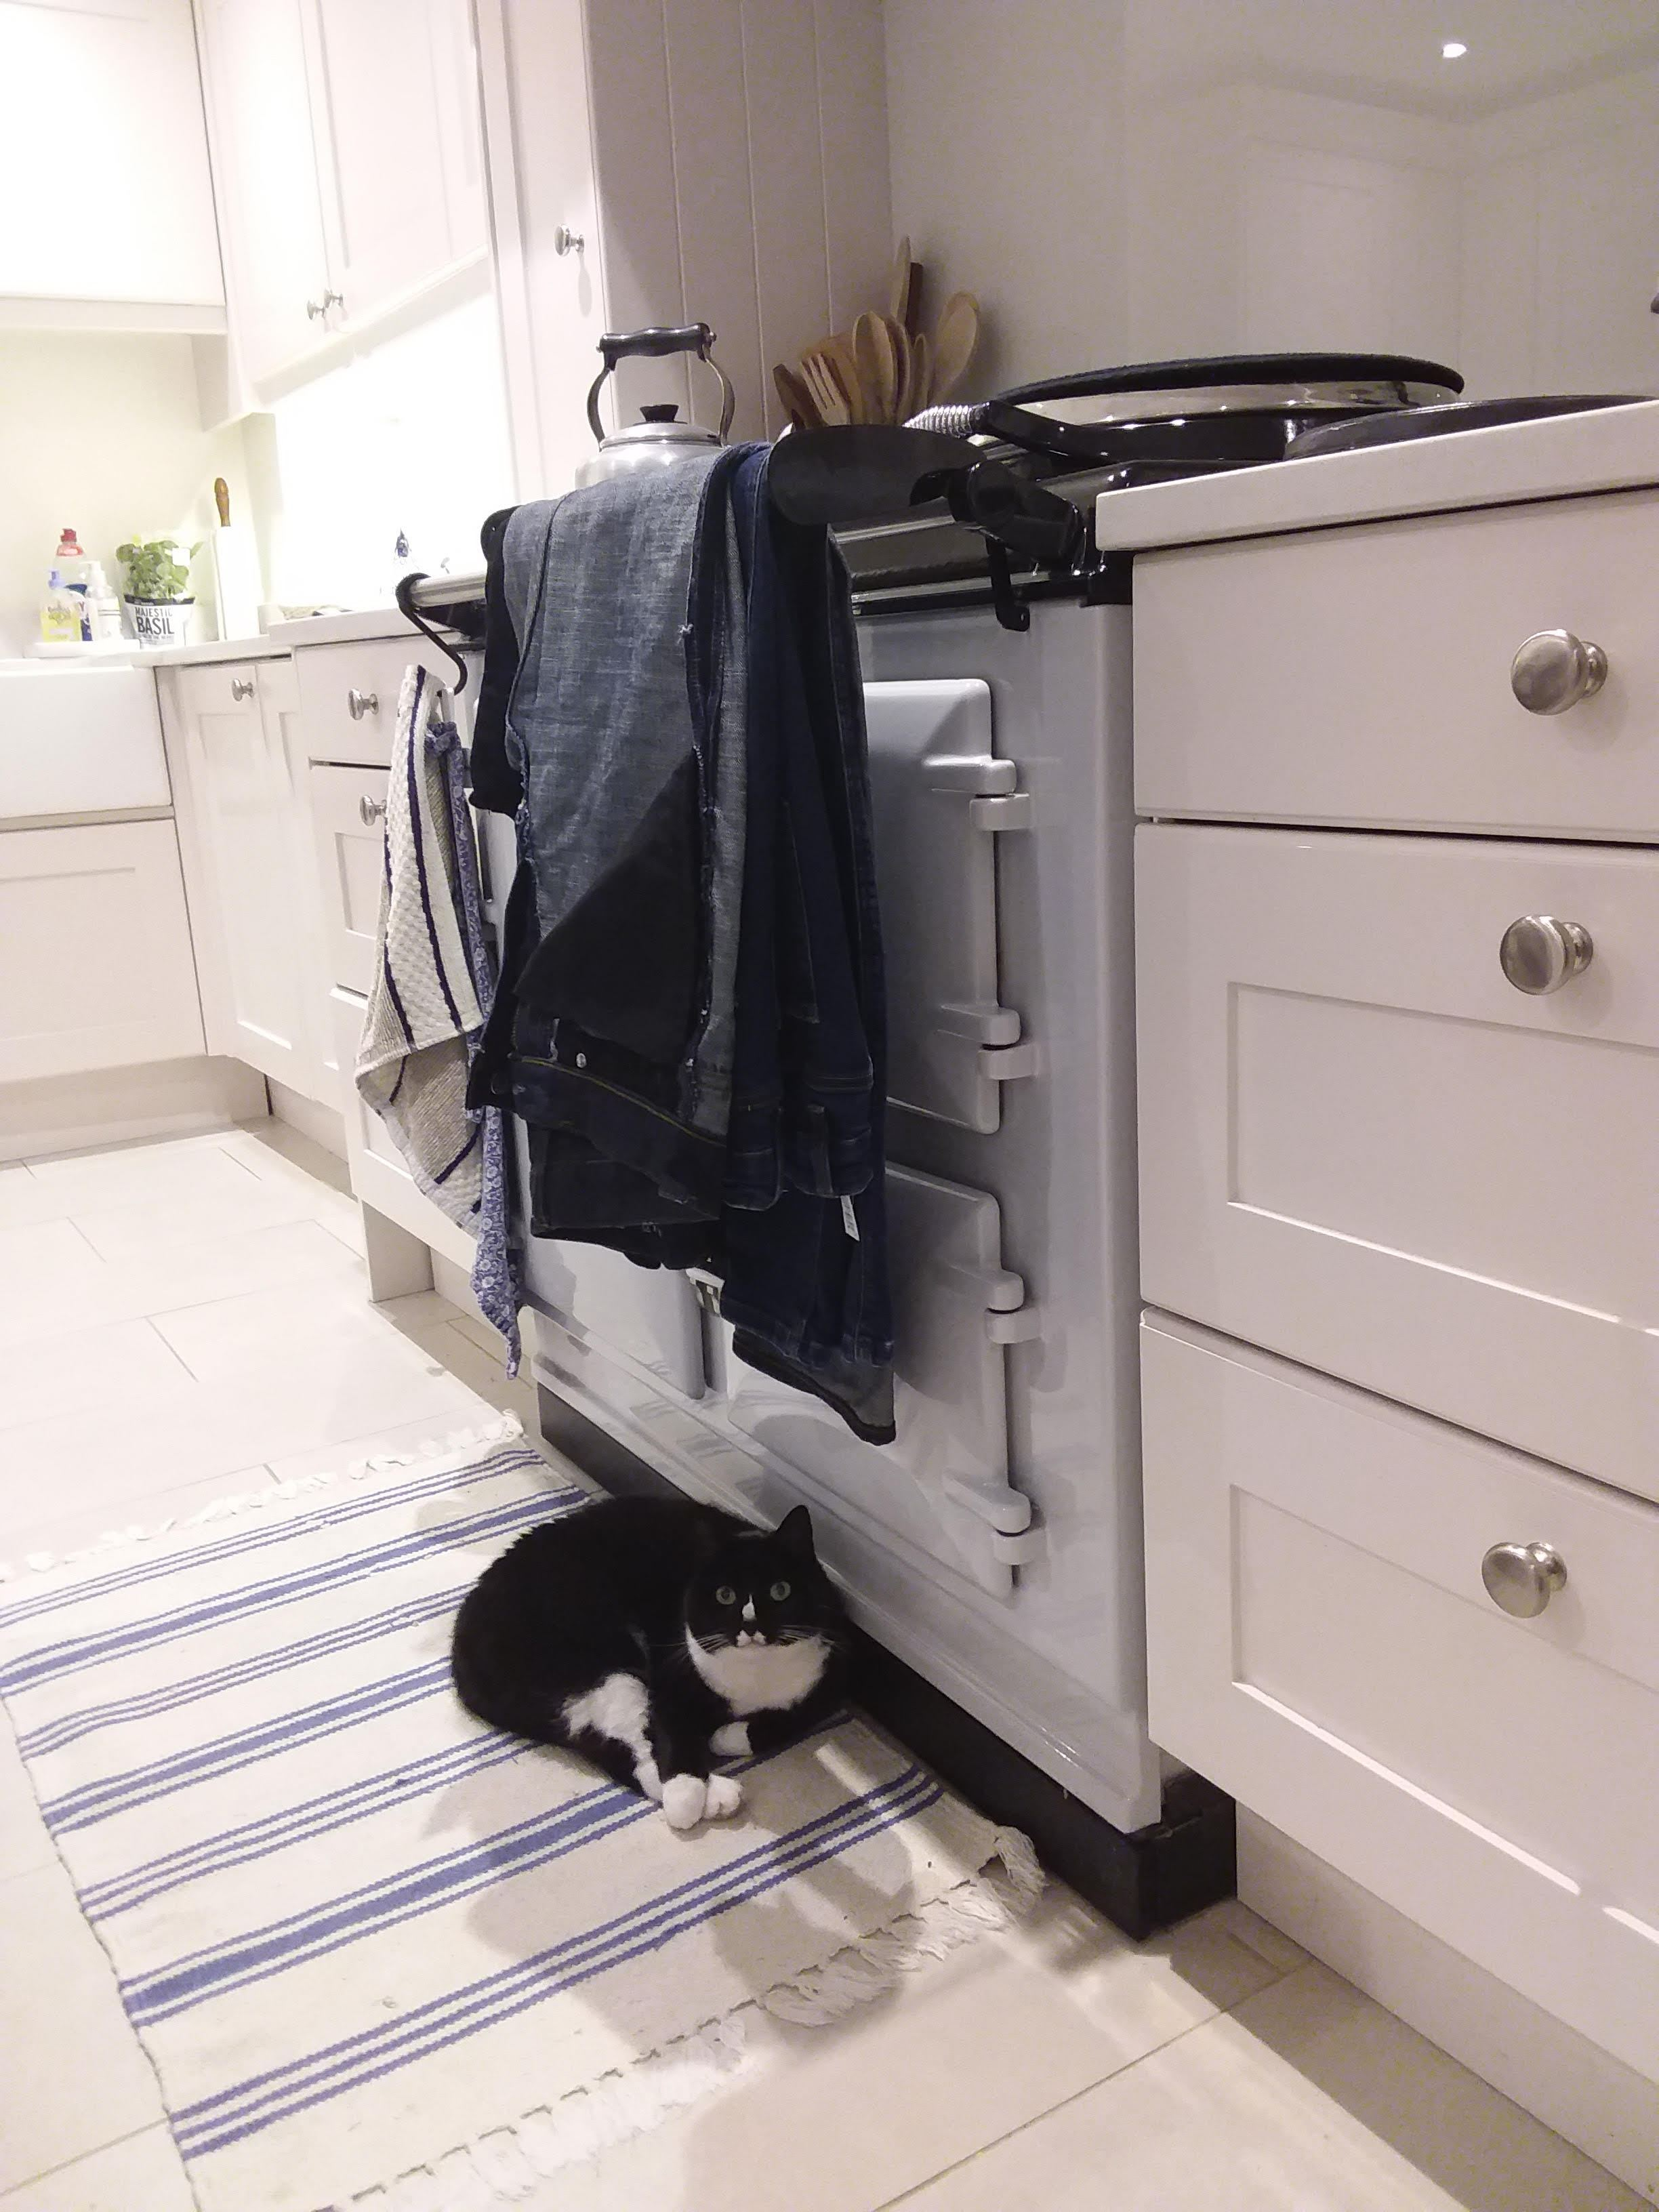 Aga range cooker and cat